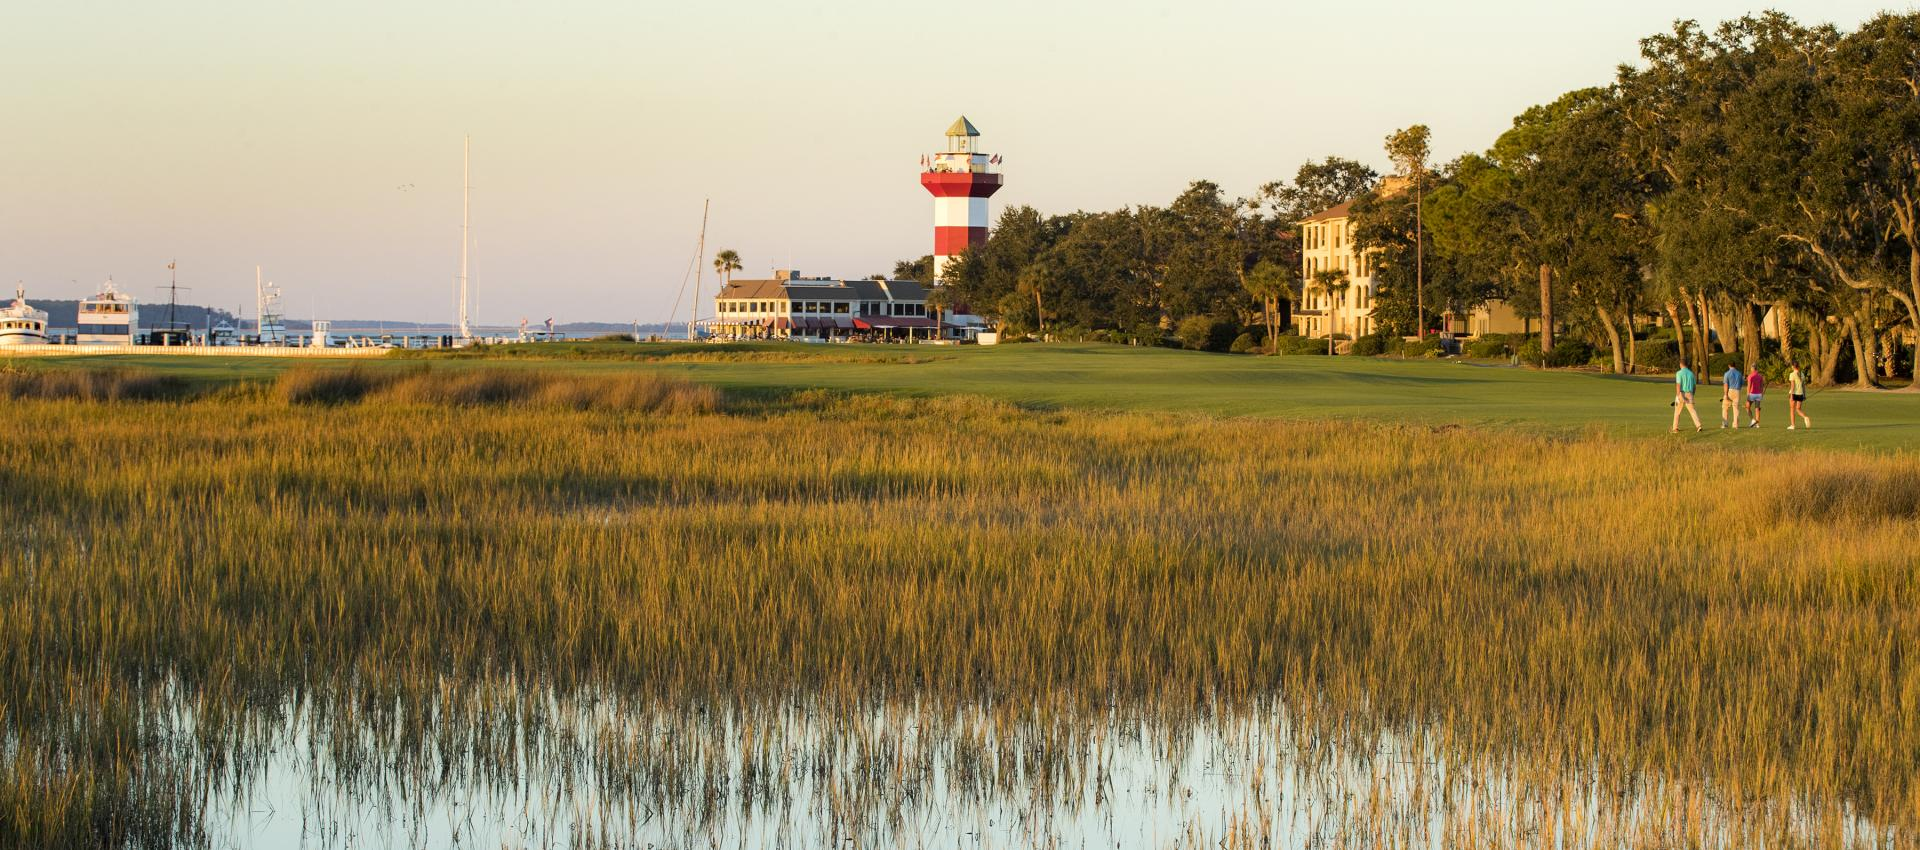 A wide angle shot of the 18th green of Harbour Town Golf Links. In the distance is the lighthouse, sunset, and 4 golfers in the distance.